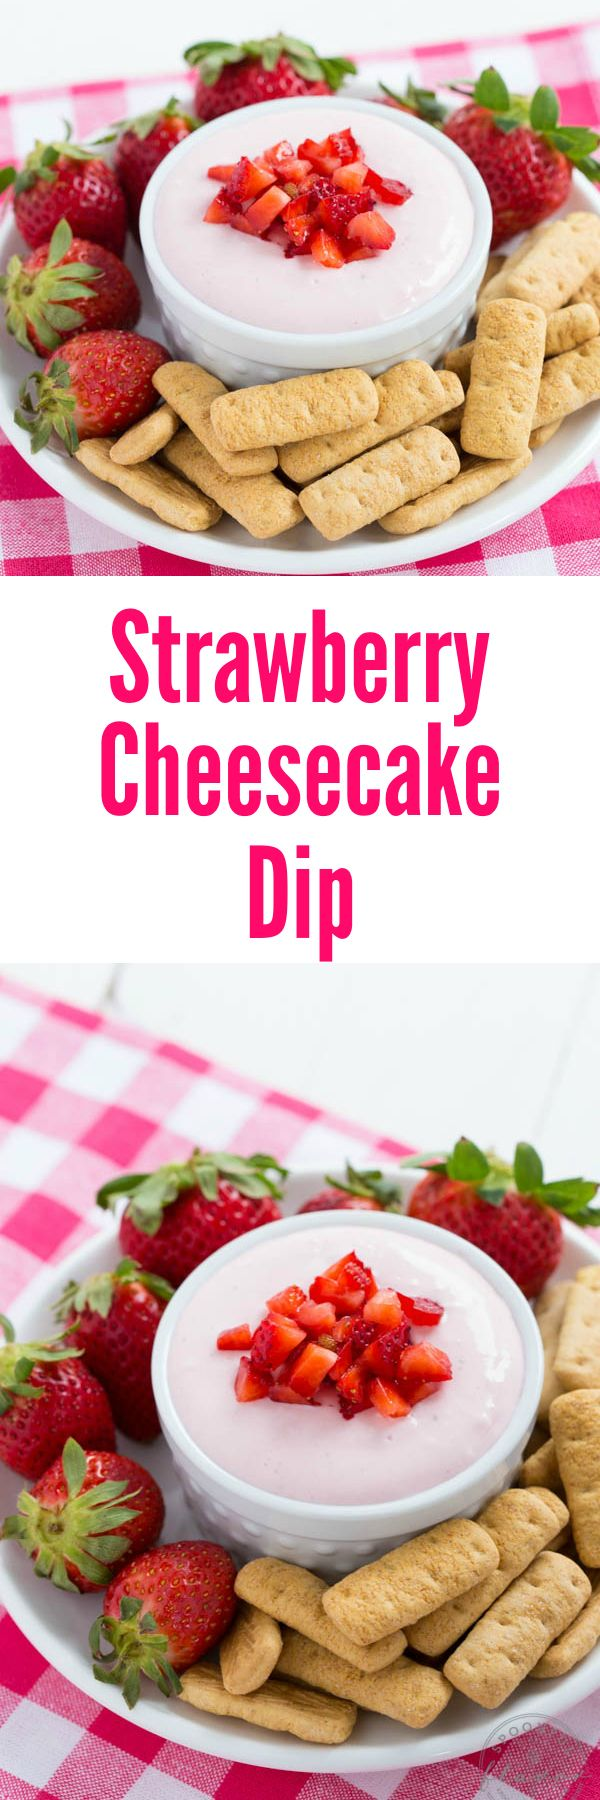 Strawberry Cheesecake Dip is an easy dessert recipe with fresh strawberry flavor!